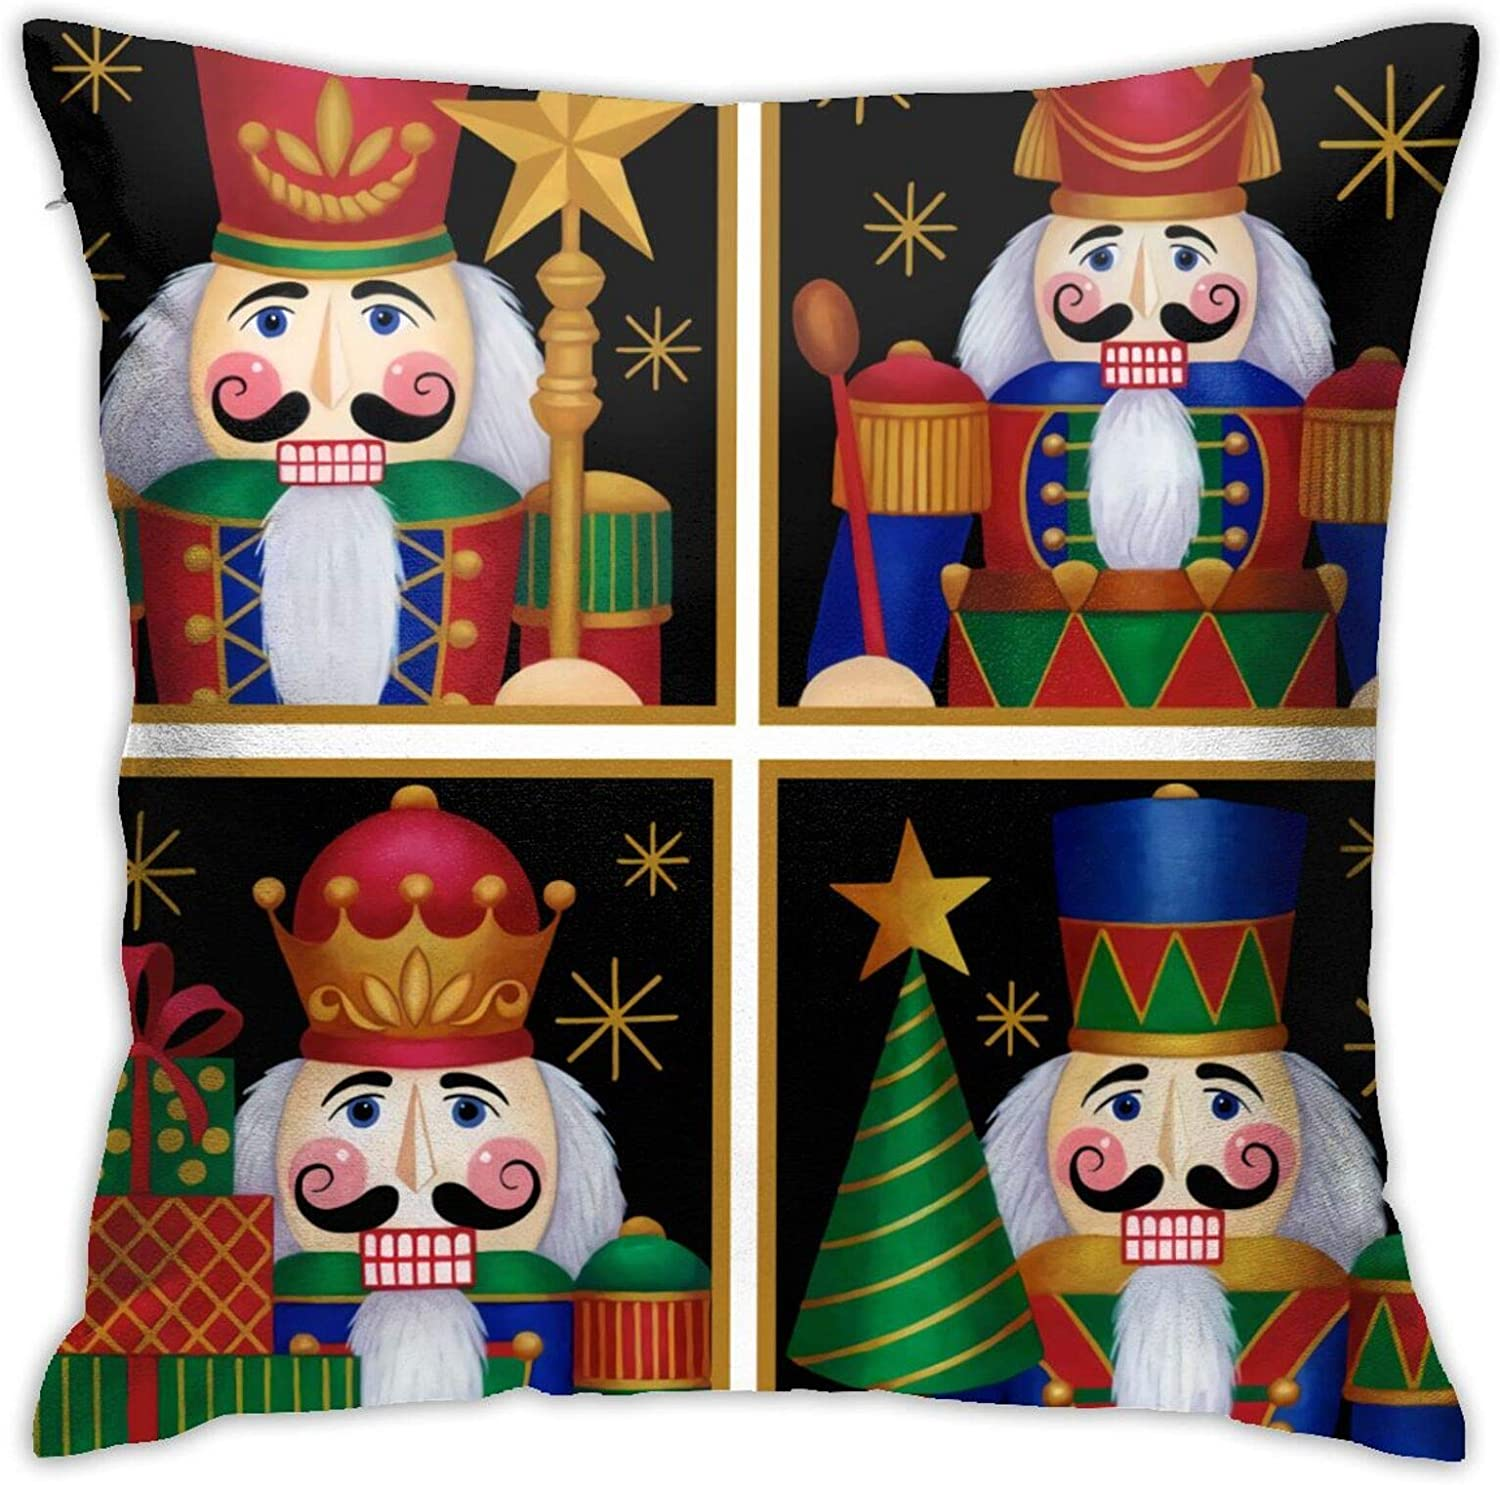 antoipyns Best Nutcrackers 3D Printed Pattern Square Cushiondecorative Pillow Case Home Decor Square 18x18 Inches Pillowcase/Living Room/Car/Bedroom